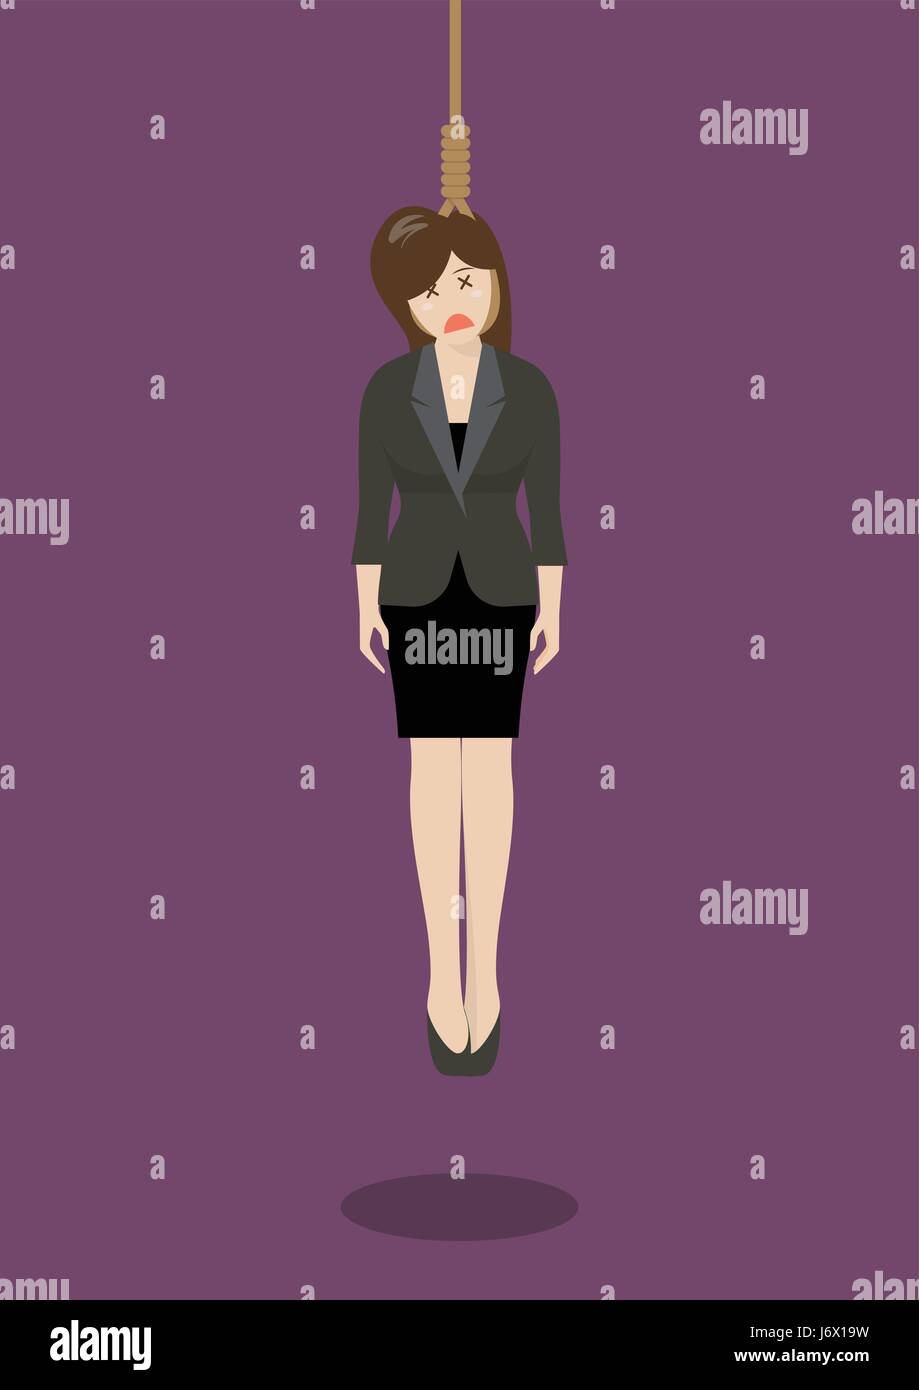 Hanged businessman. Business concept - Stock Vector